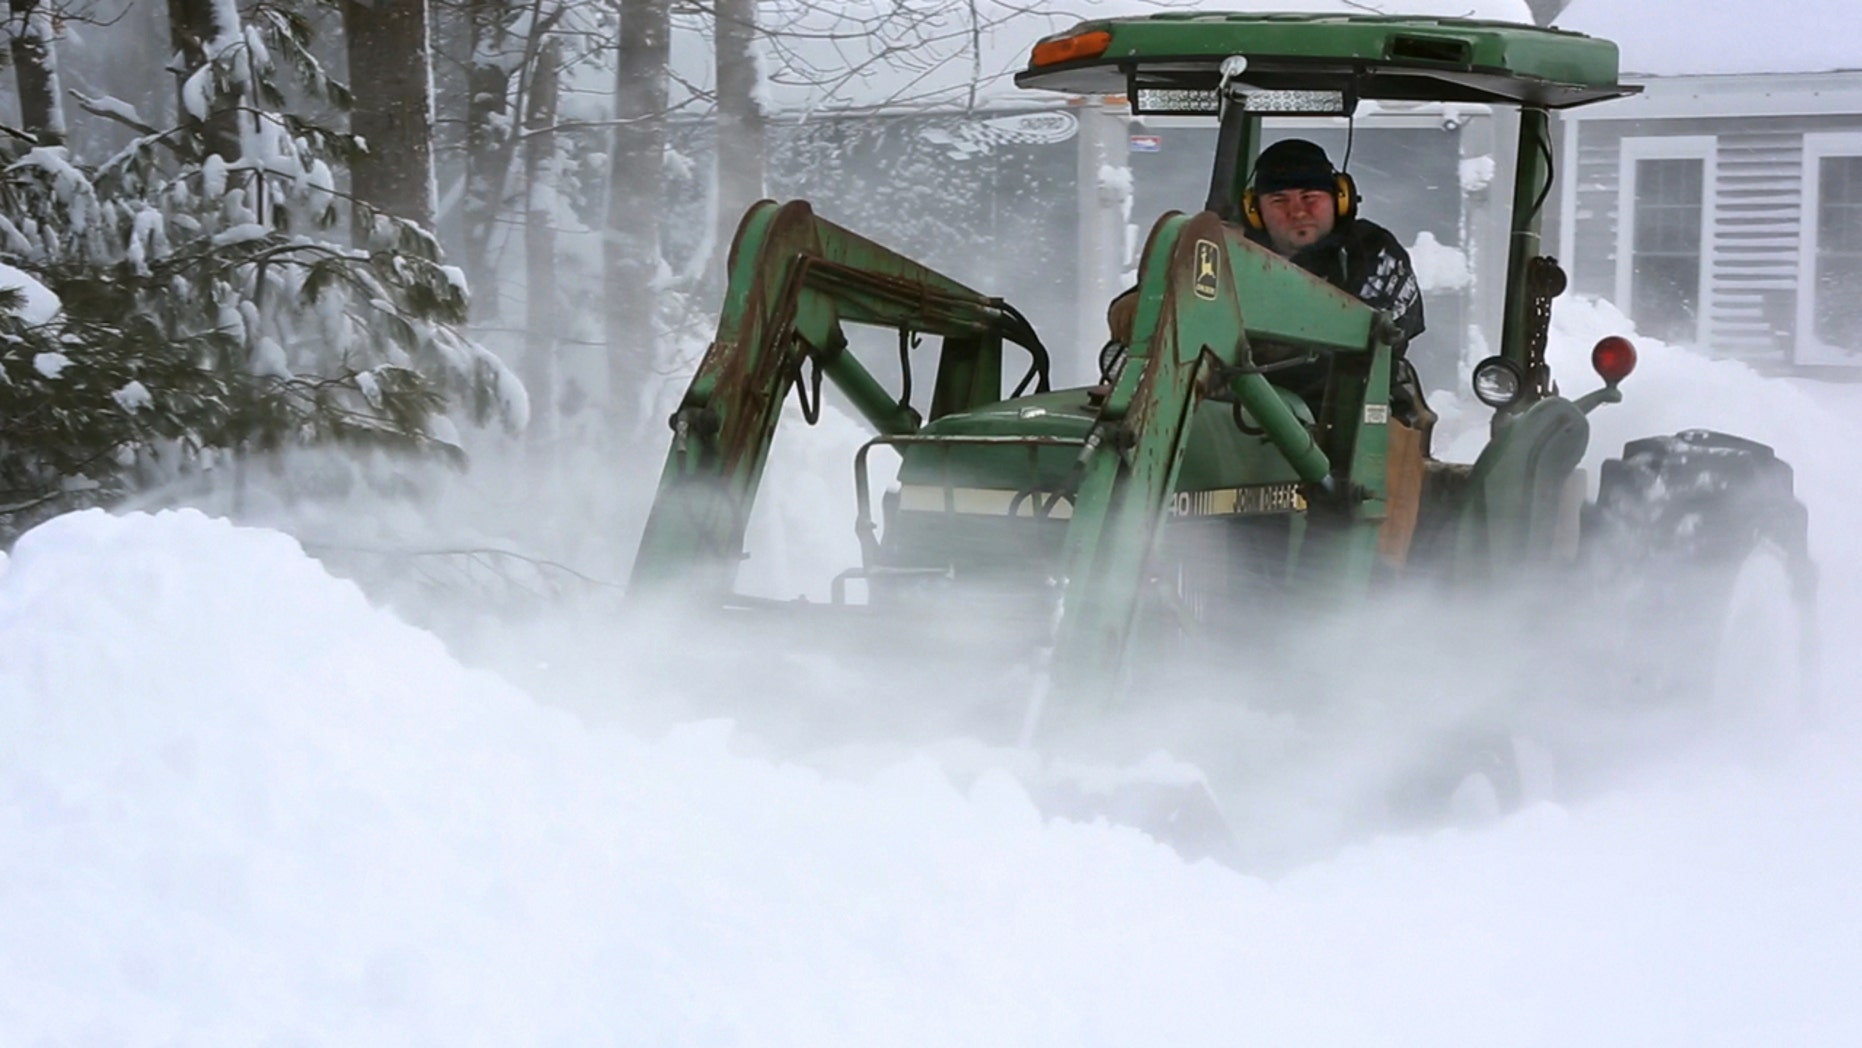 Alan Boucher uses a farm tractor to dig out of his driveway during a blizzard, Monday, Feb. 13, 2017, in Freeport, Maine.